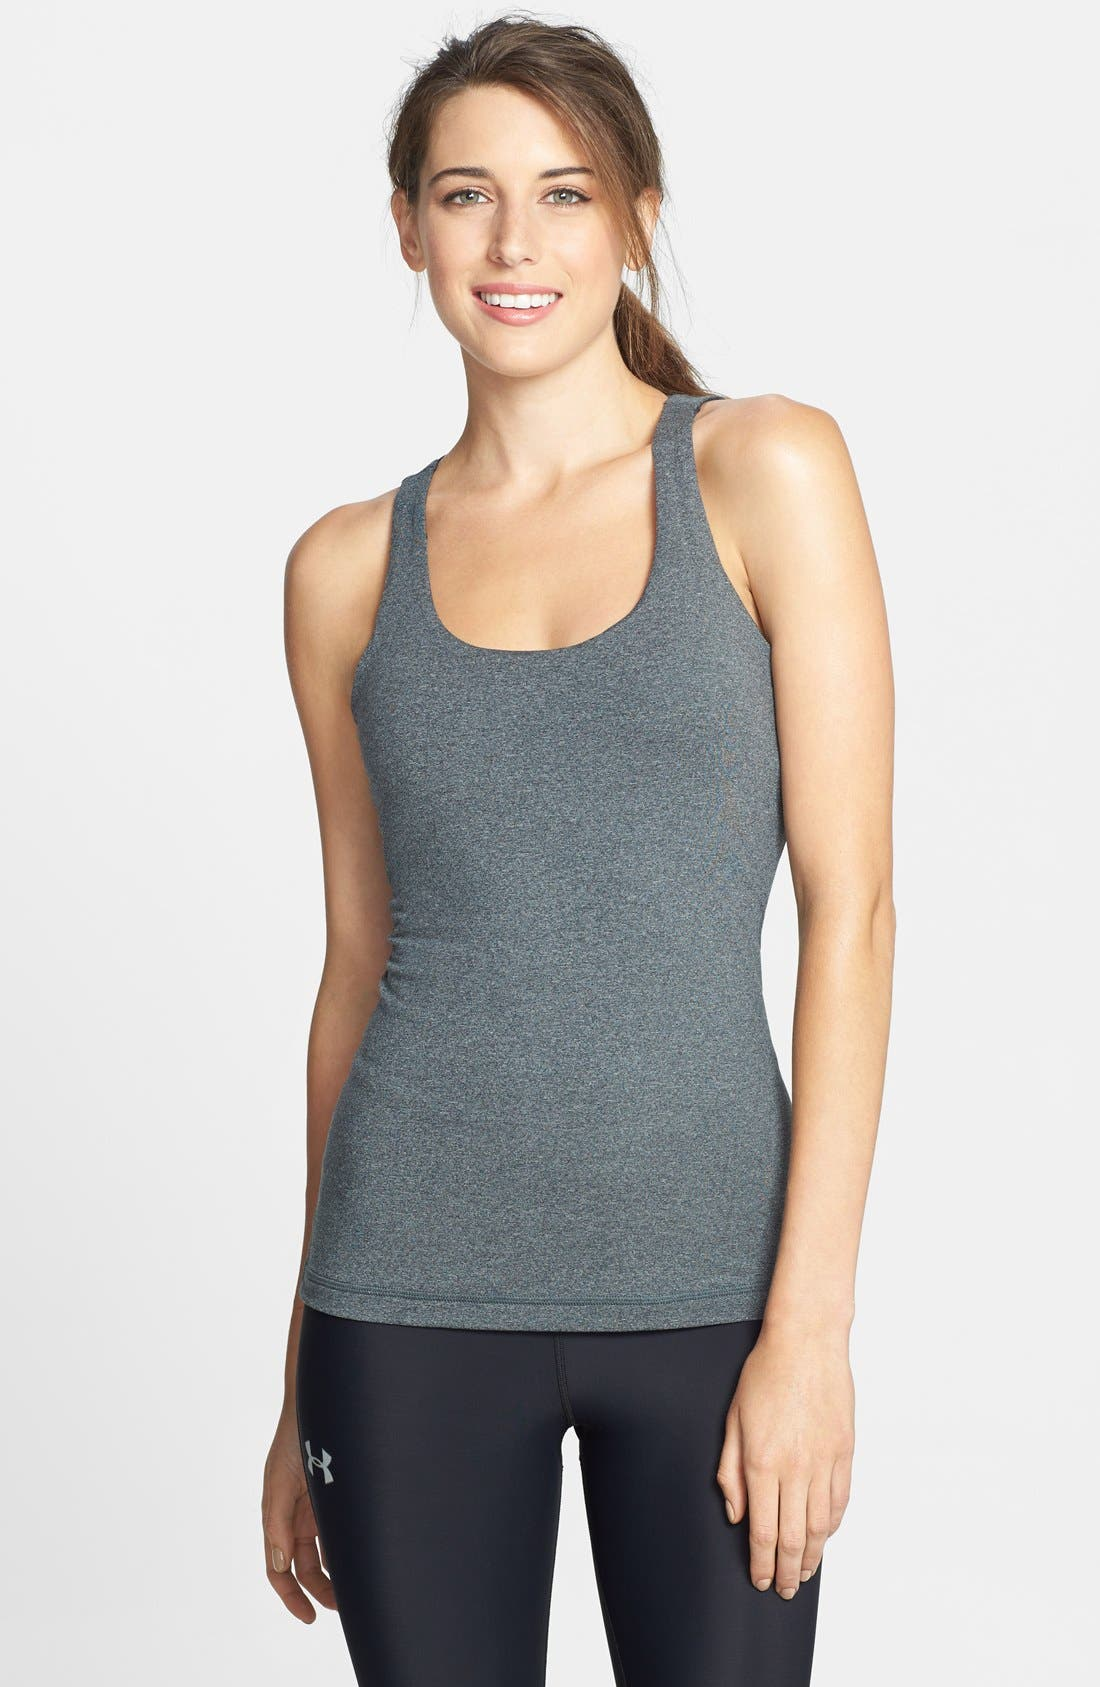 Main Image - Under Armour 'Back in Action' Tank